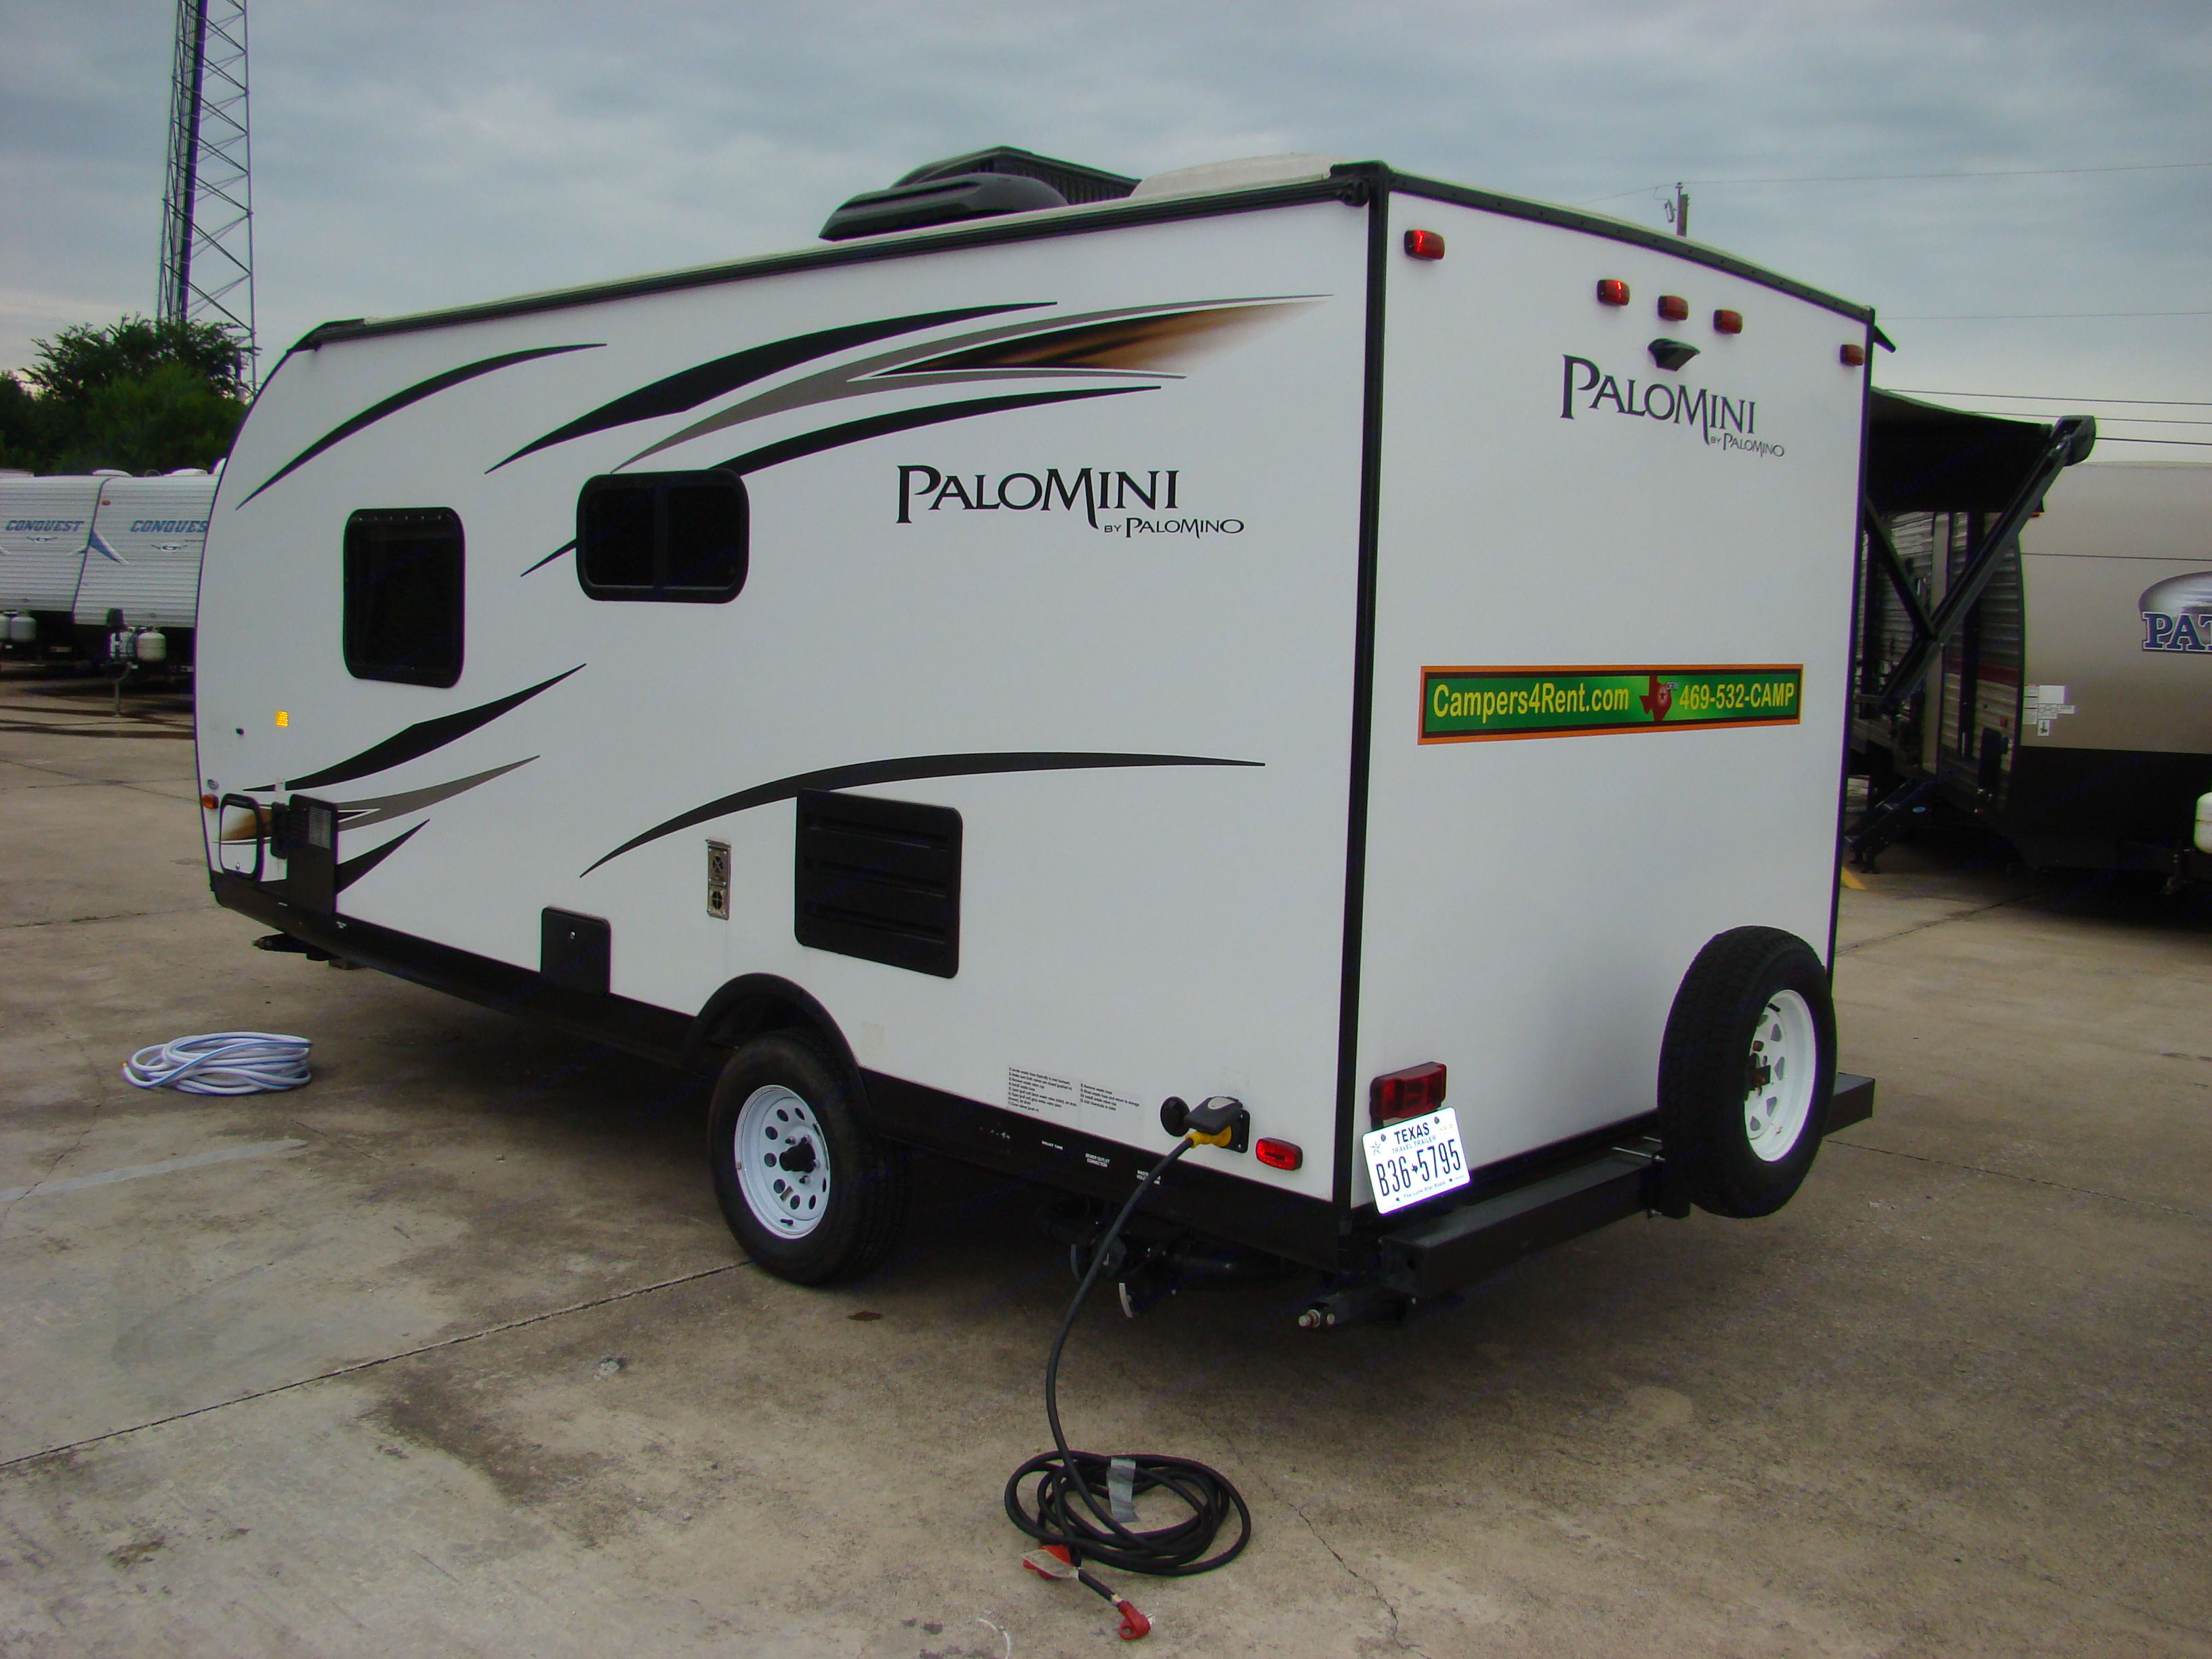 Hook up accessories included. Palomino Palomini 180FB 2019